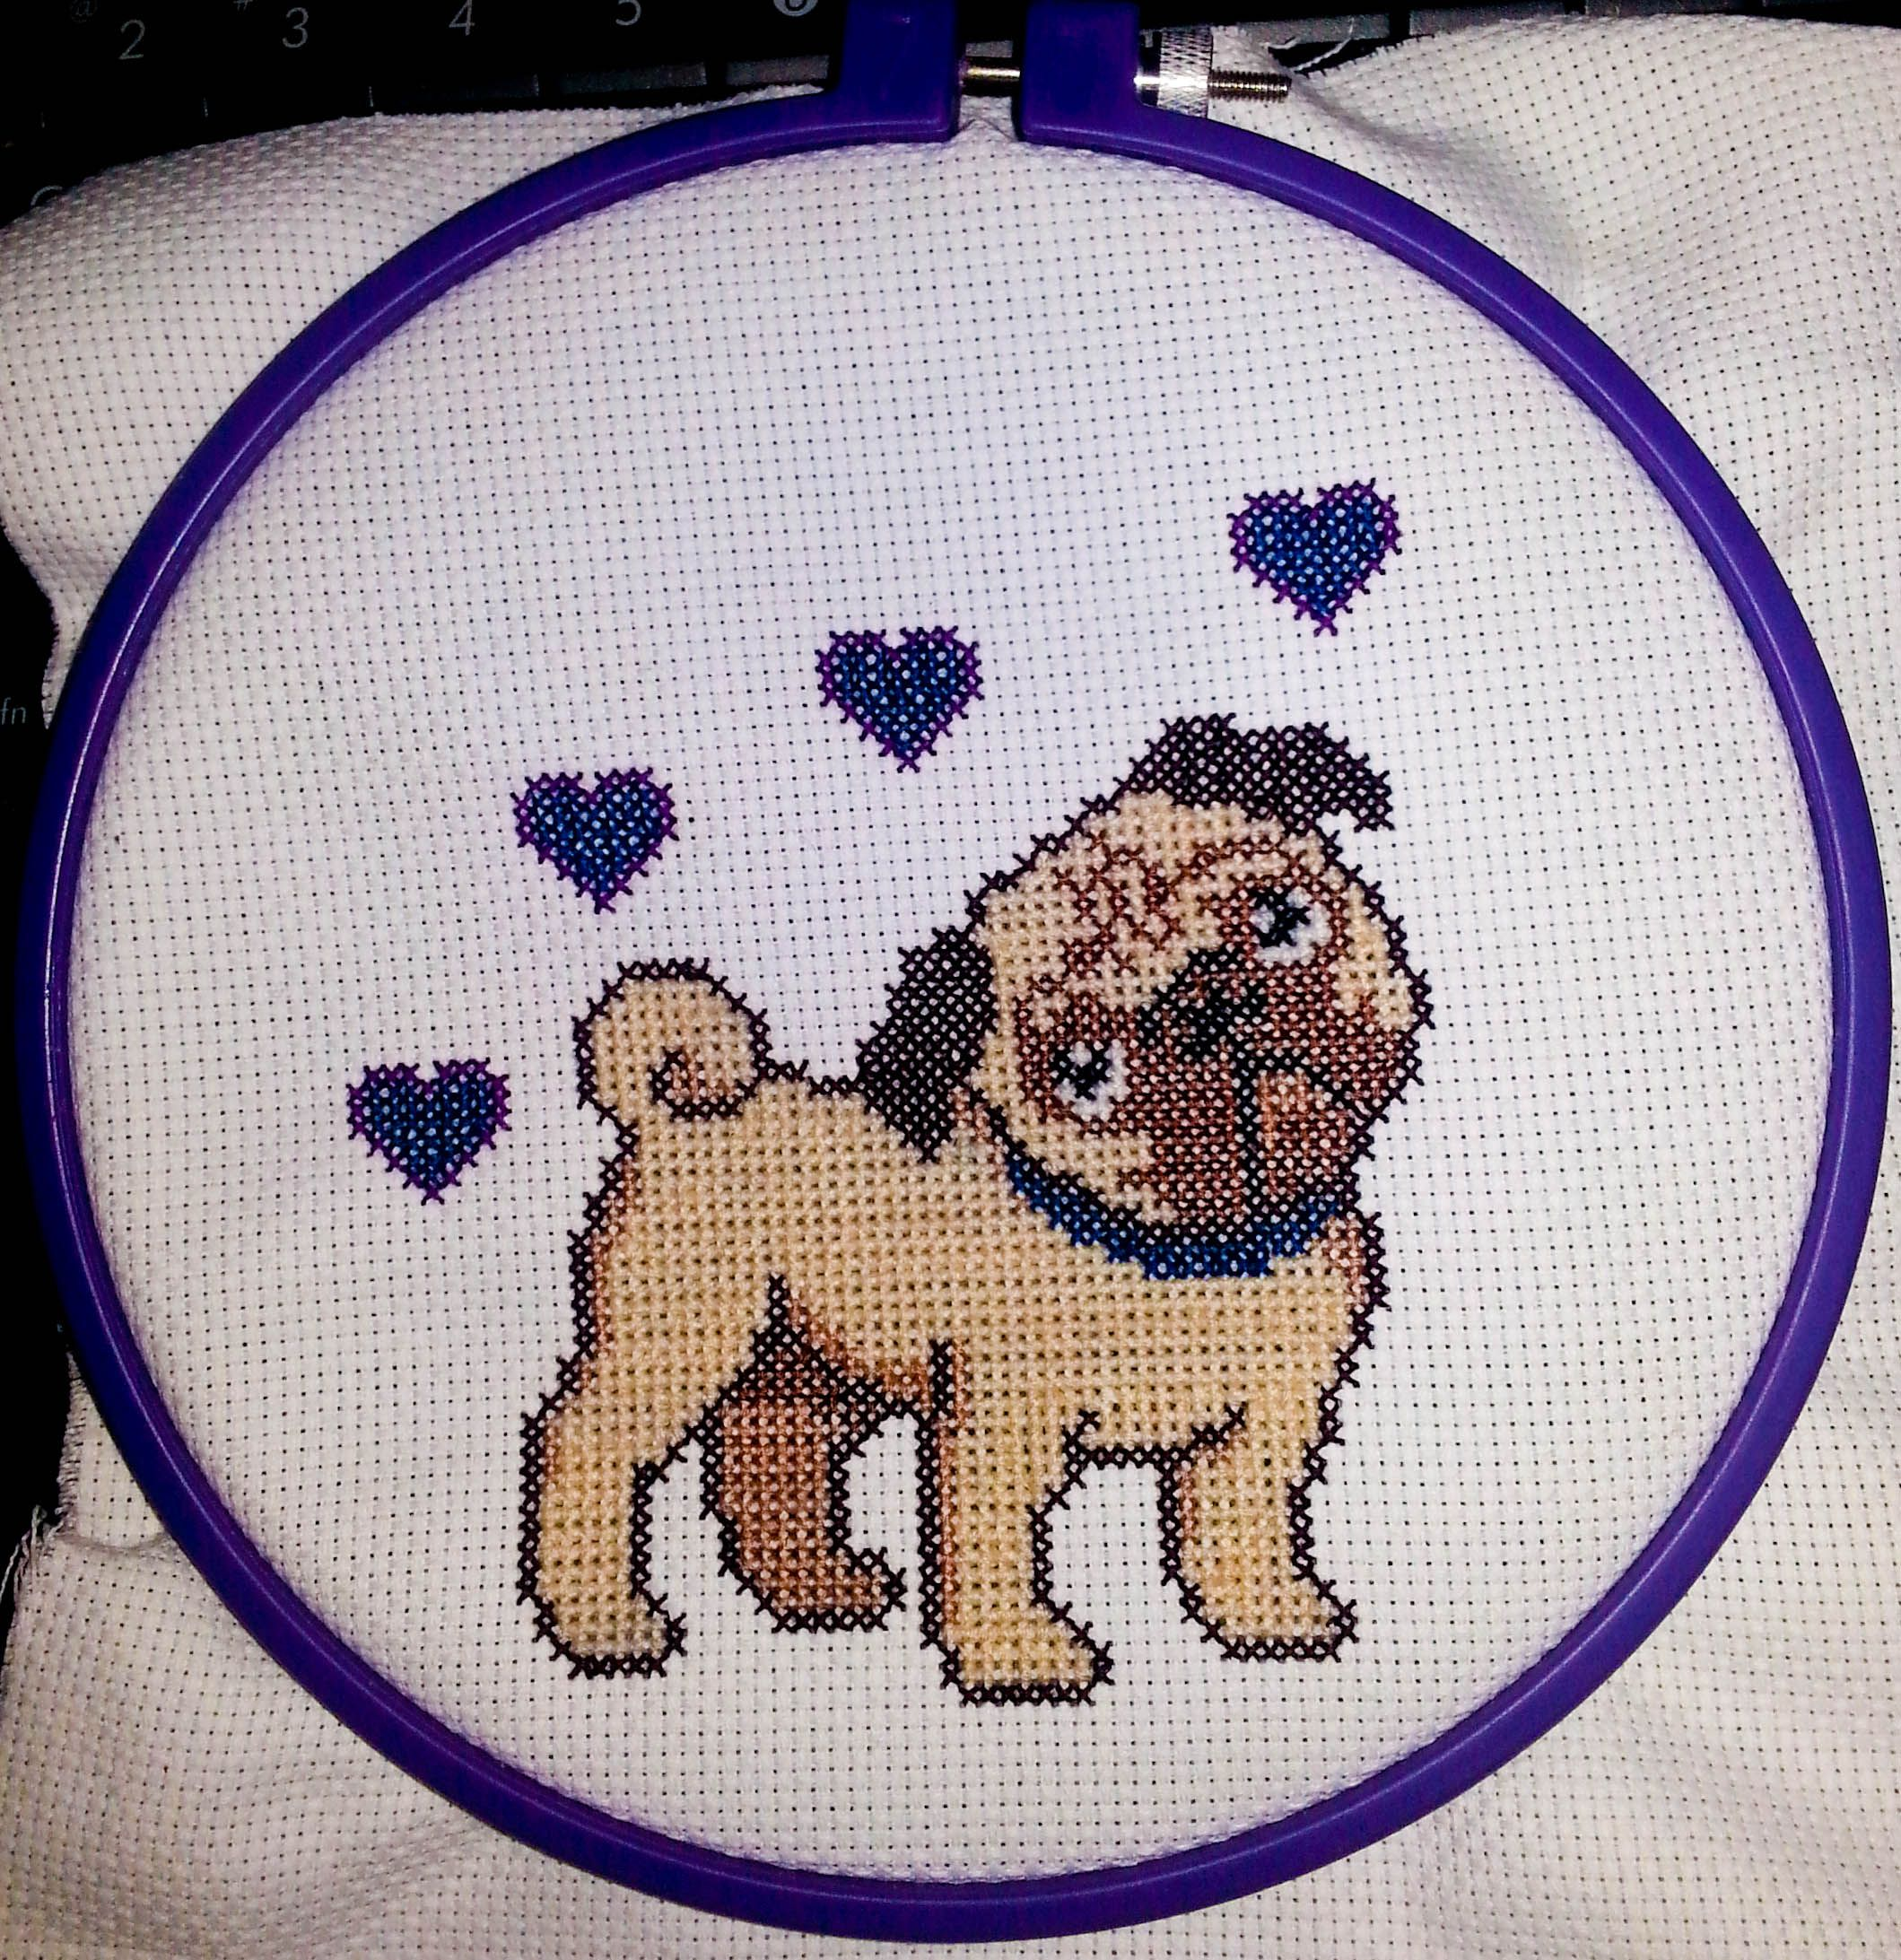 Pug Cross Stitch I made for Corwin Prescott and Nicole Vaunt. If you follow their work you've probably see photos of their adorable pug Franco :)